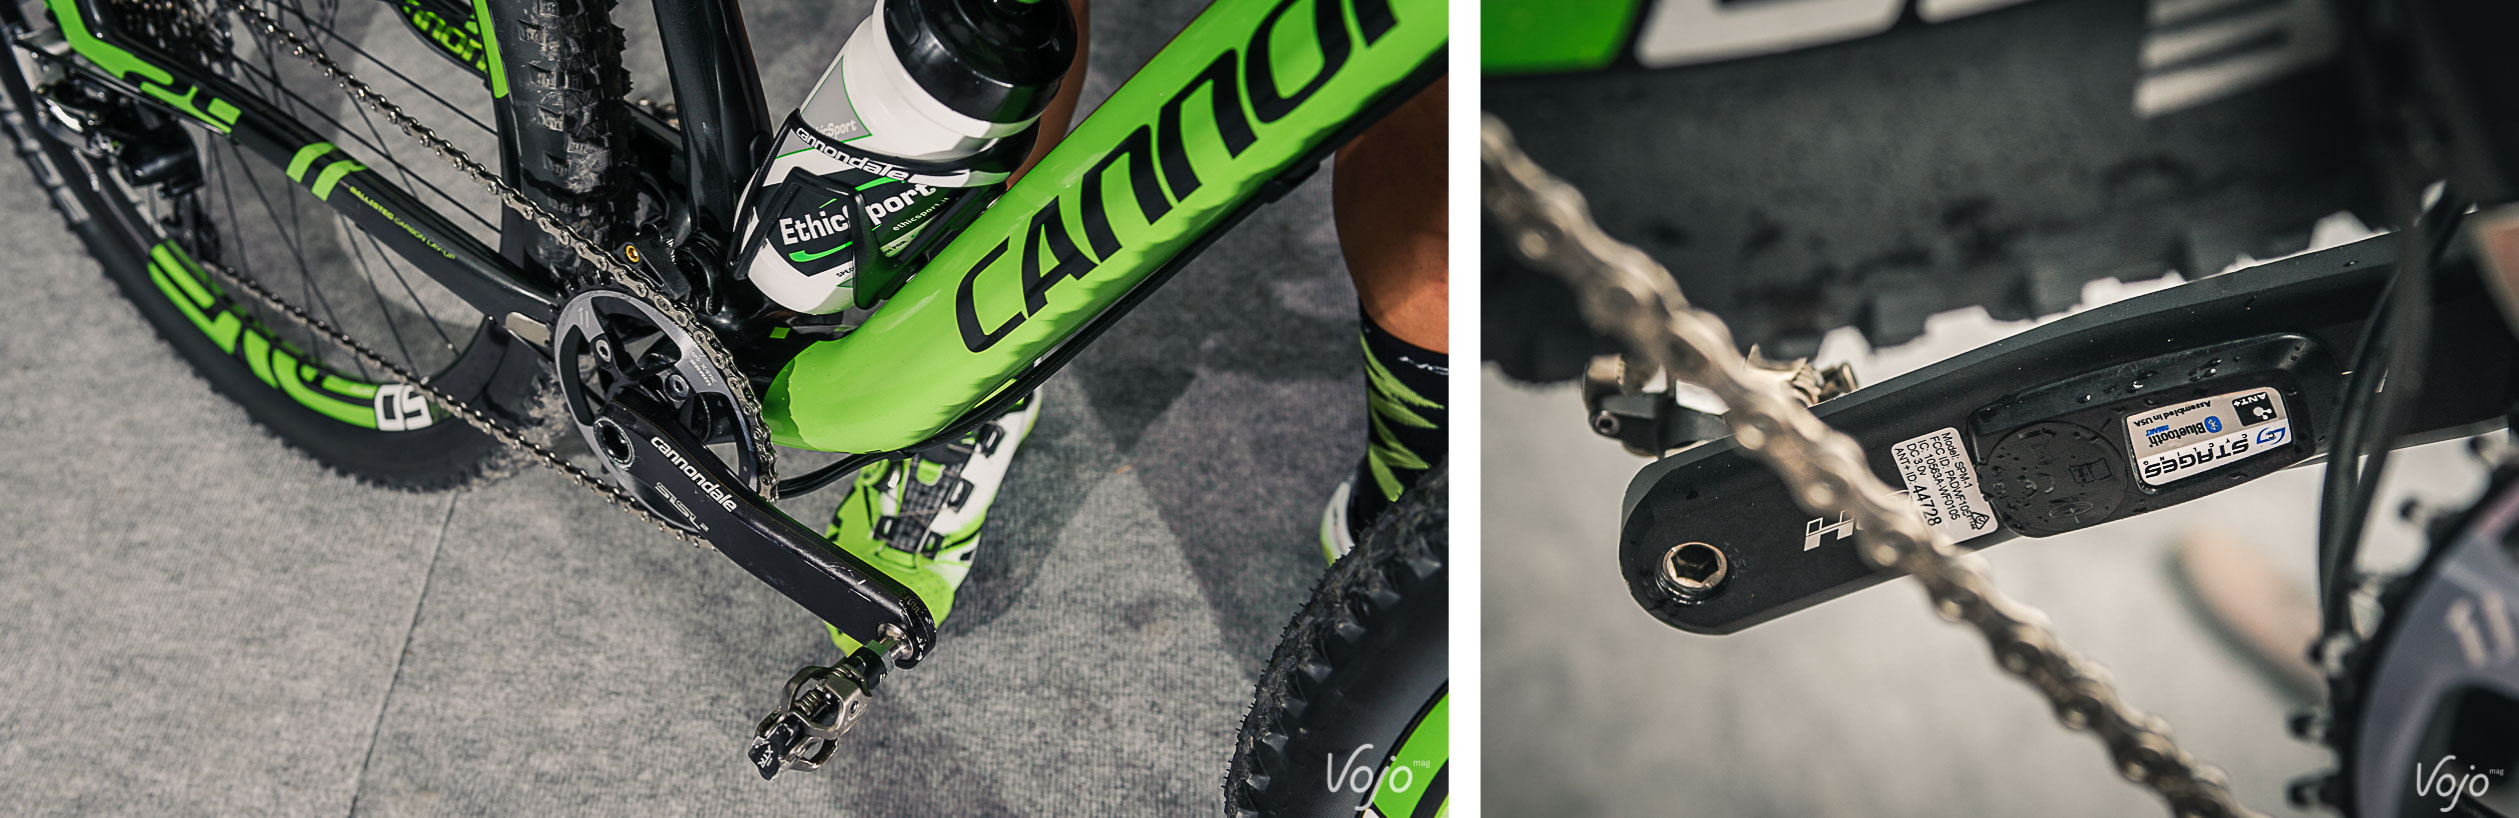 1-World_Cup_MTB_Pro_Bike_Check_Cannondale_Scalpel_Manuel_Fumic_Copyright_OBeart_VojoMag-1